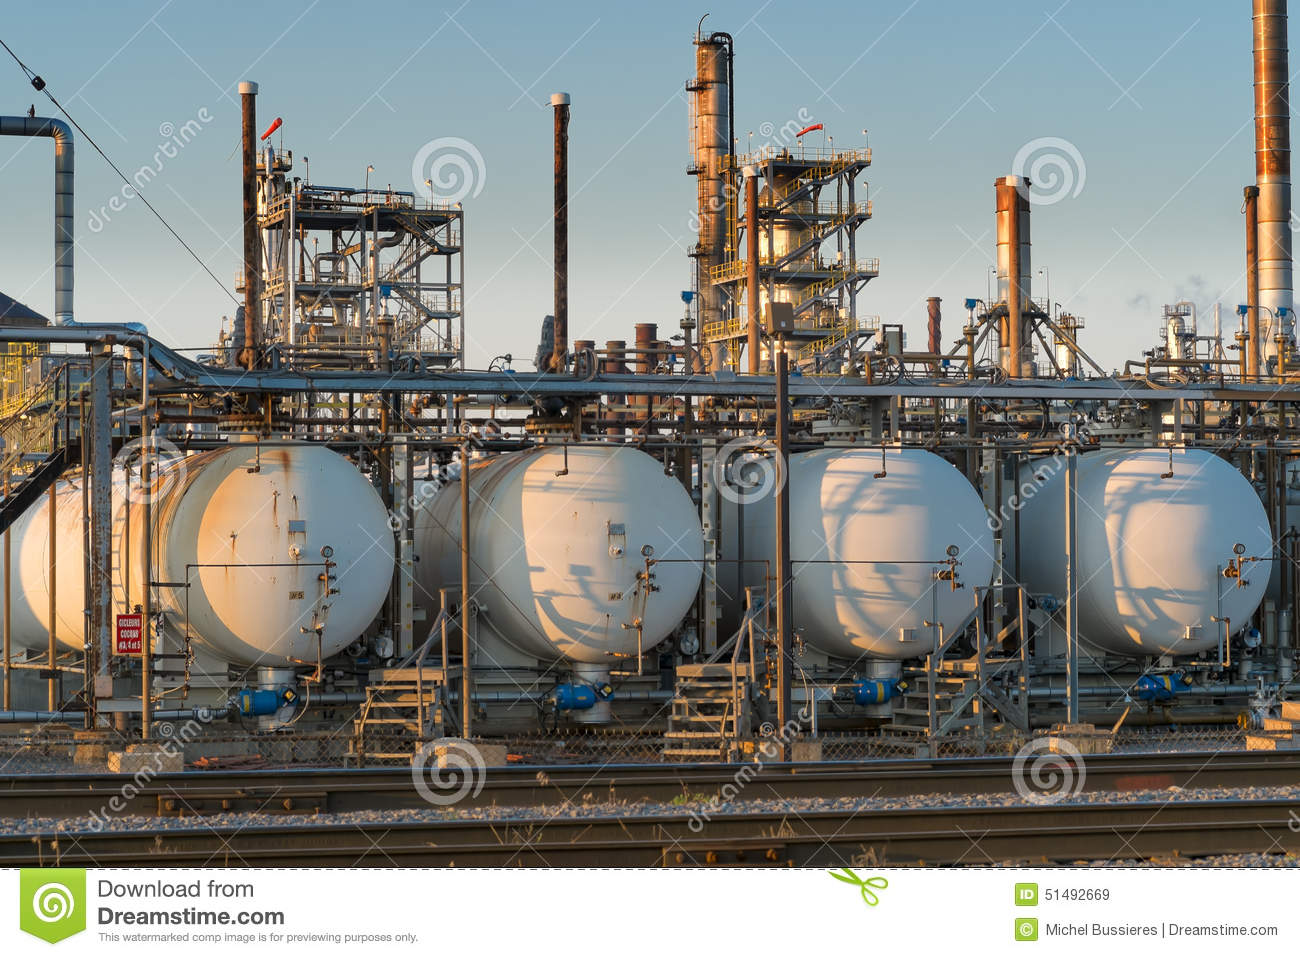 Close Up Of Oil Refinery At Sunset Stock Photo - Image: 51492669